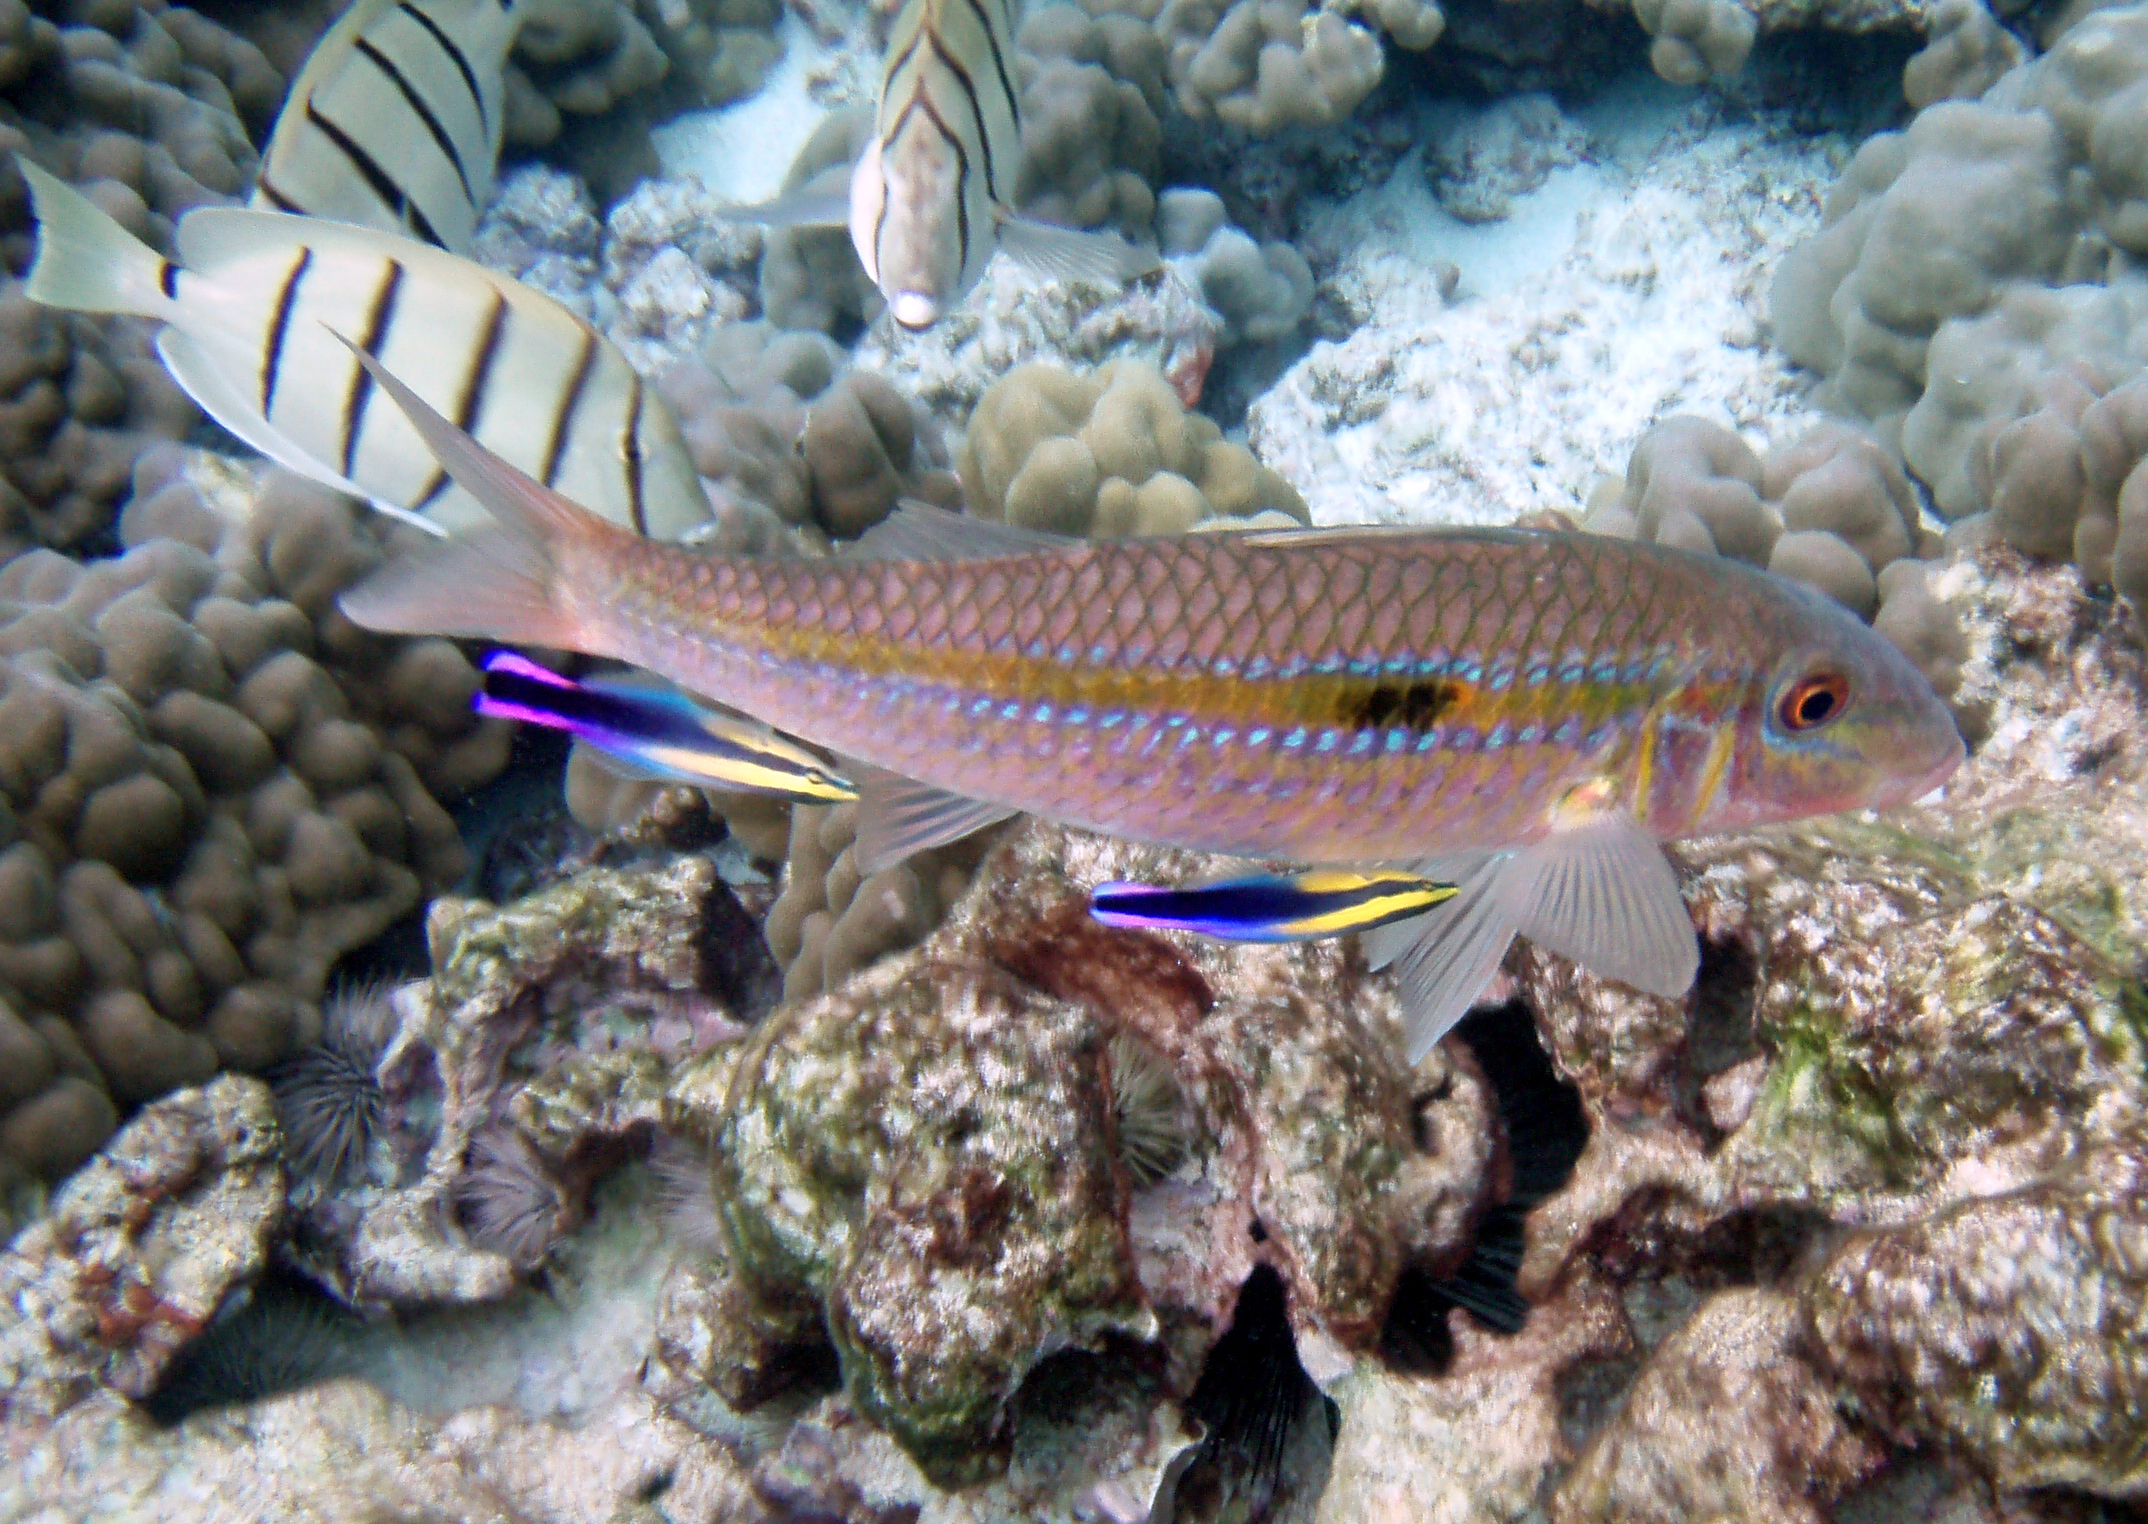 Goatfish being cleaned by two cleaner Wrasses